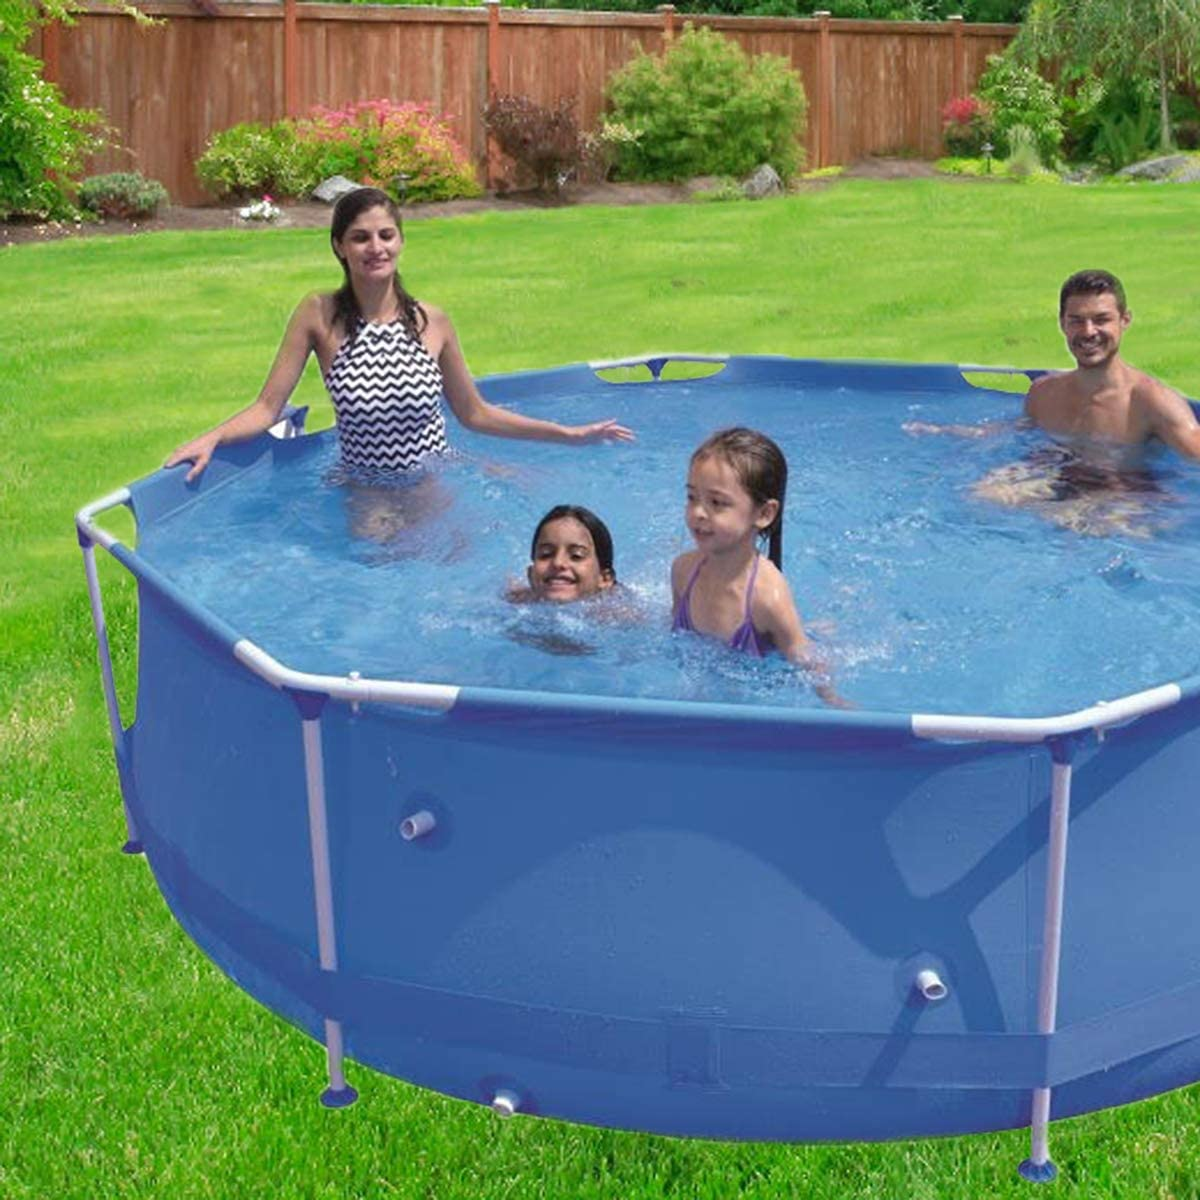 Easy Set for Backyard Summer Water Party Swimming Pool Above Ground Kids Adults 10ftx3oin 12ft x 30in Outdoor Metal Frame Pool with Piston for Kiddie